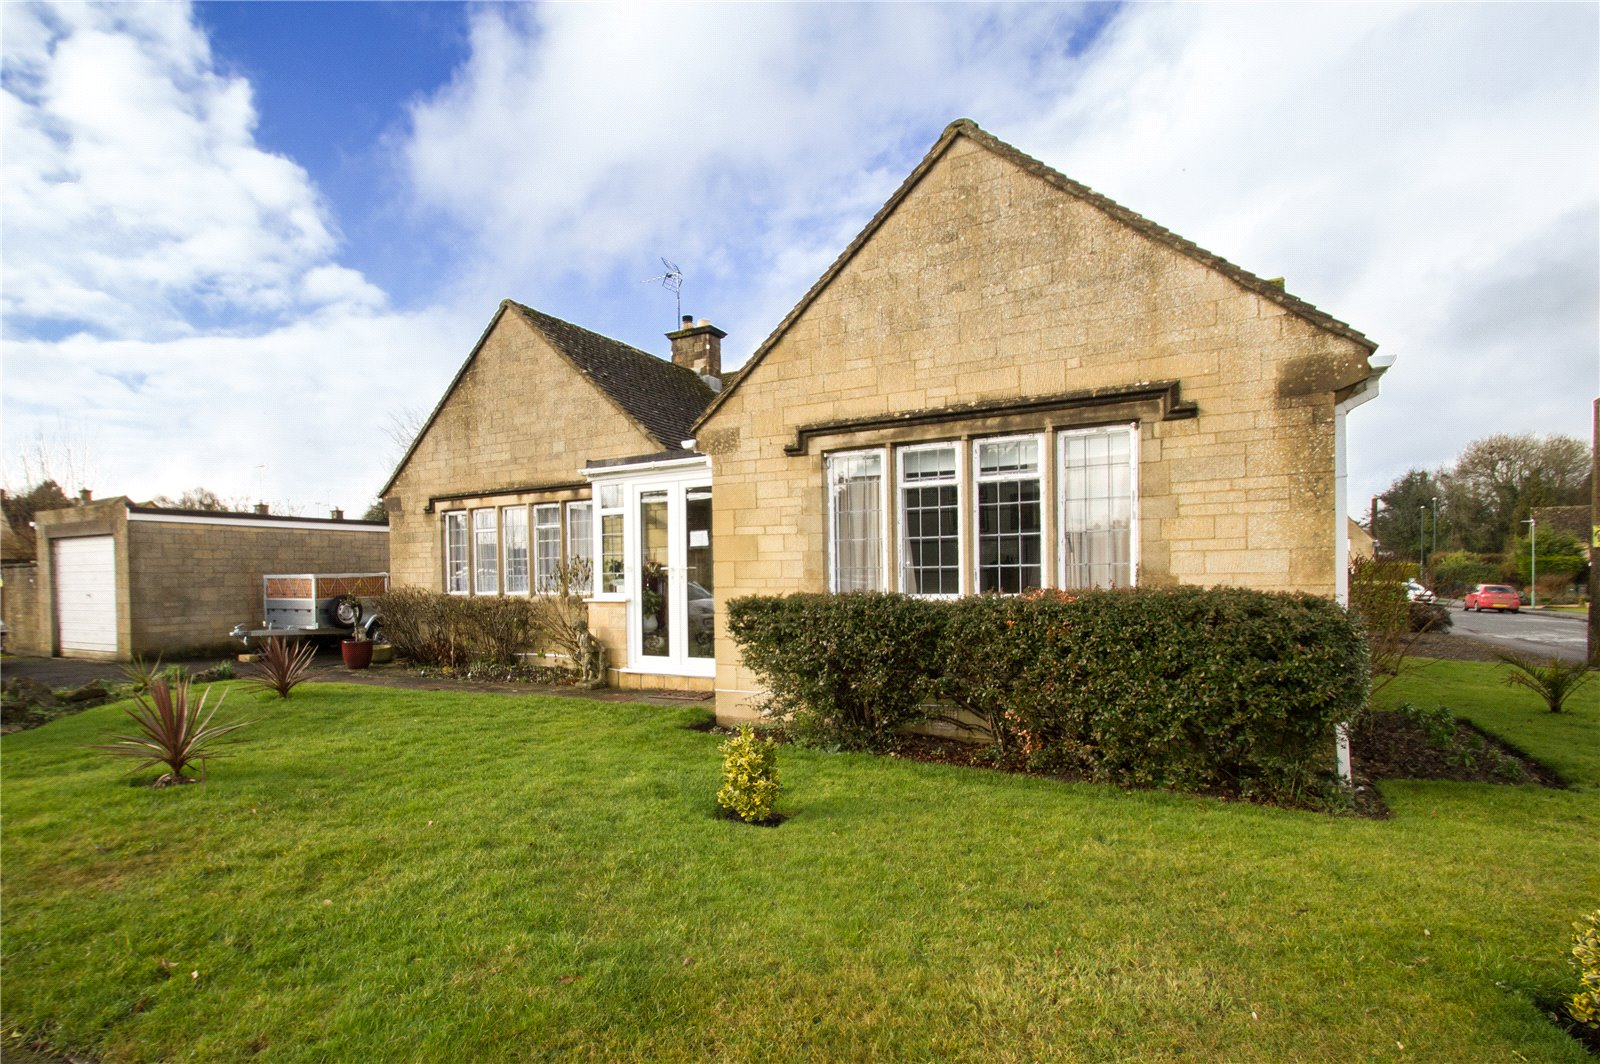 4 Bedroom House To Rent In Chesterton Park Cirencester GL7